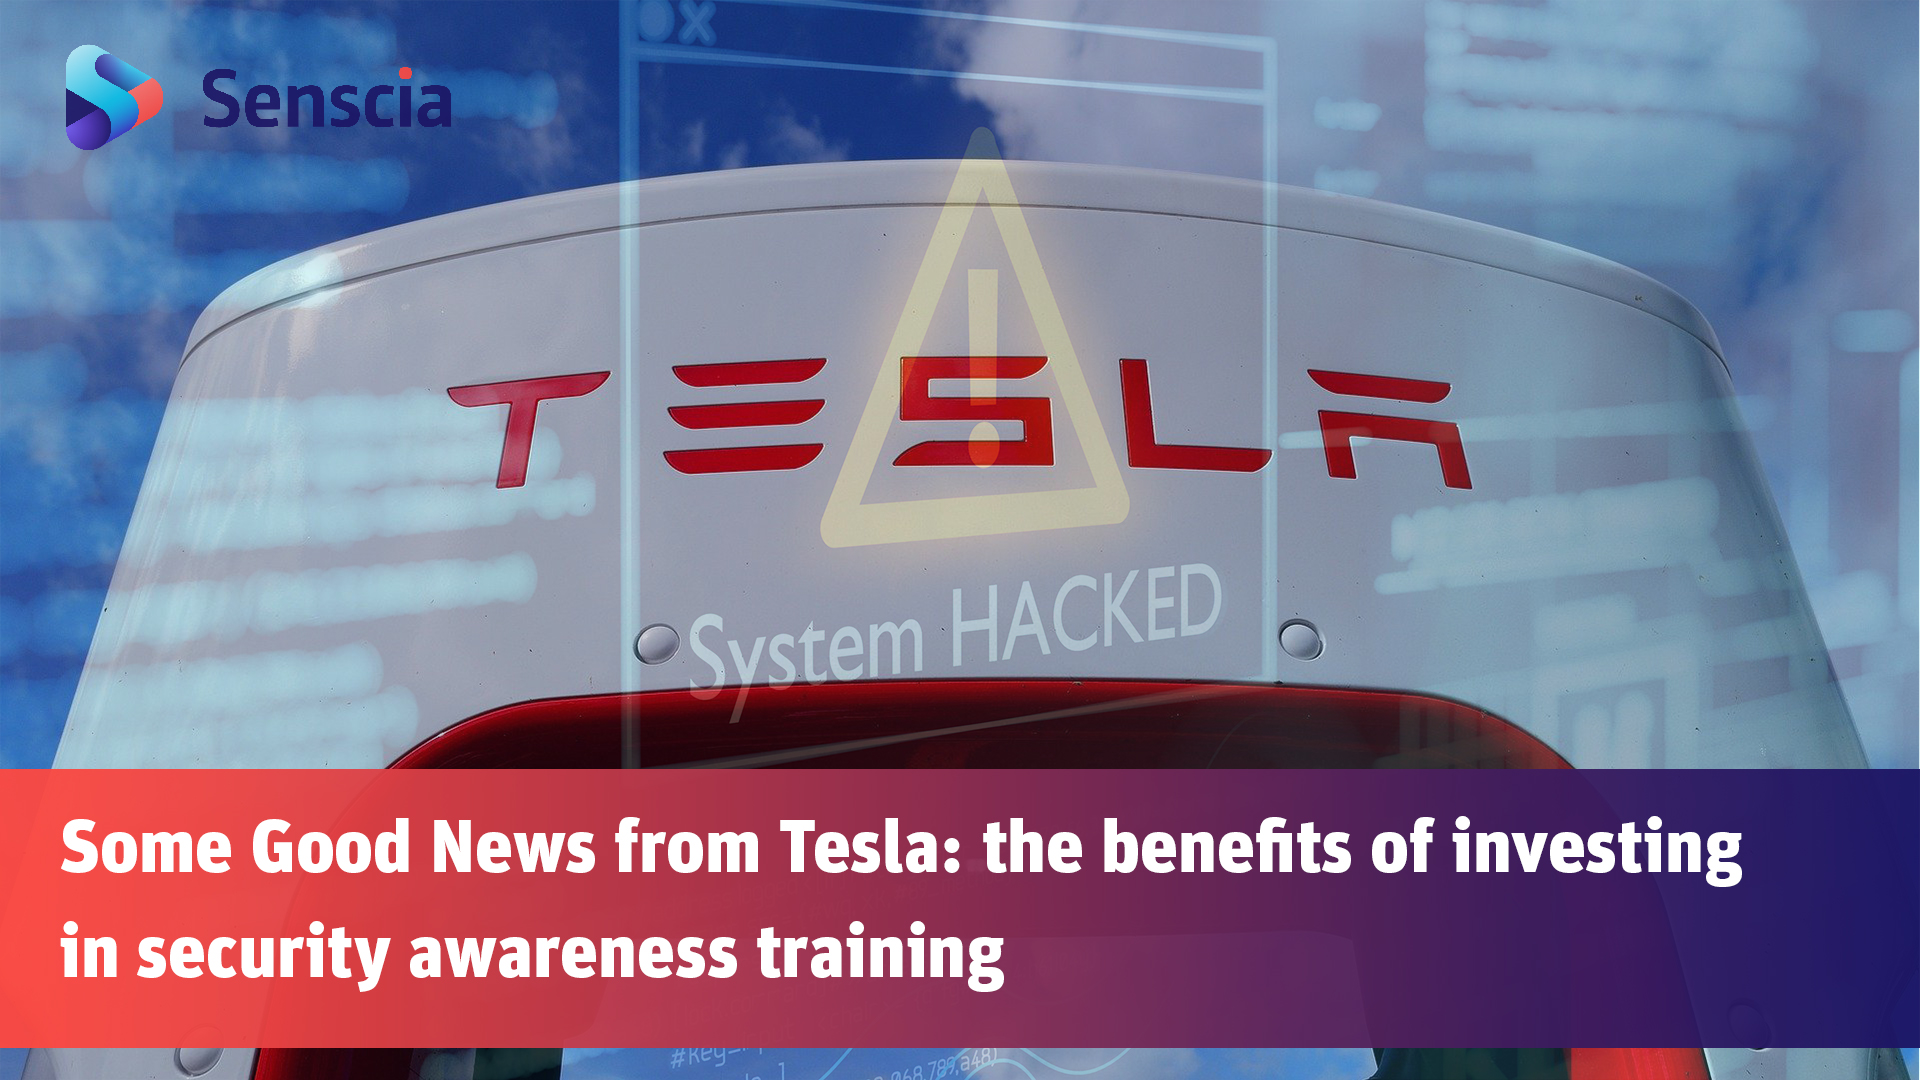 "Tesla supercharger with a system hacked prompt as an image overlay. Includes the article title ""Some Good News from Tesla: the benefits of investing in security awareness training"""